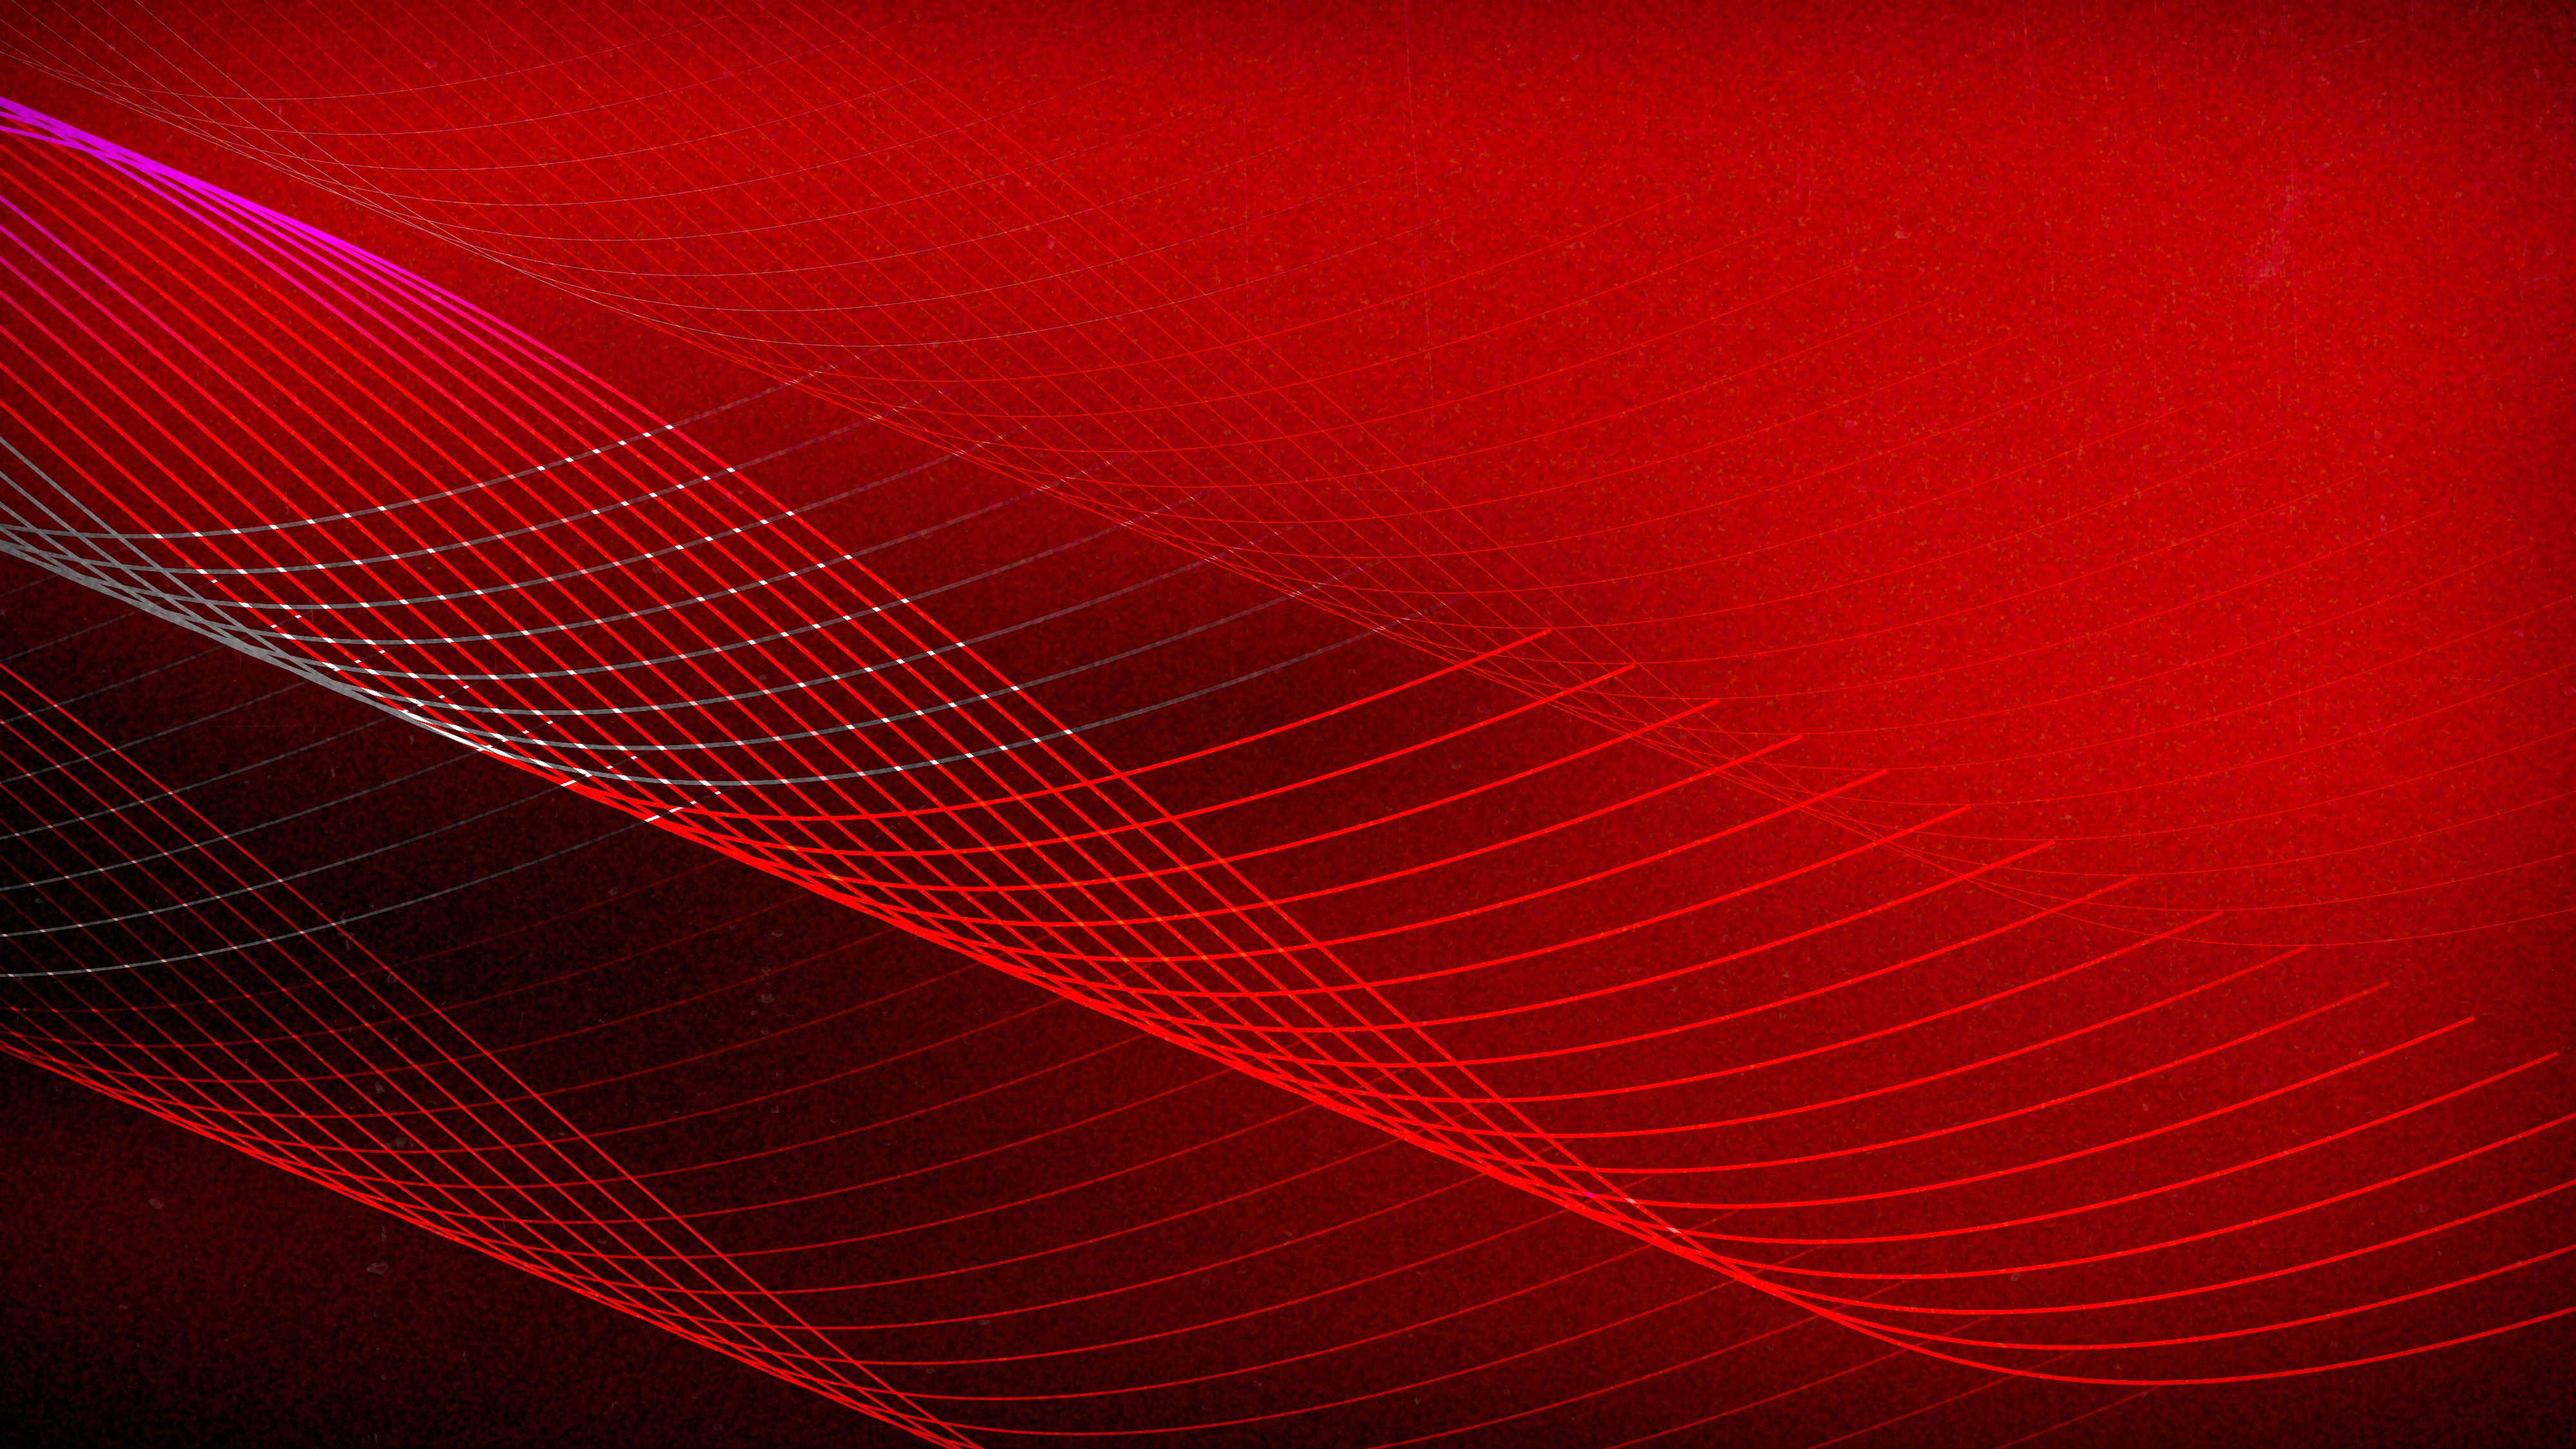 Red Maroon Line Free Background Image Design Graphicdesign Creative Wallpaper Background Circle Graphicsbackgr Free Background Images Background Images Red Background Images